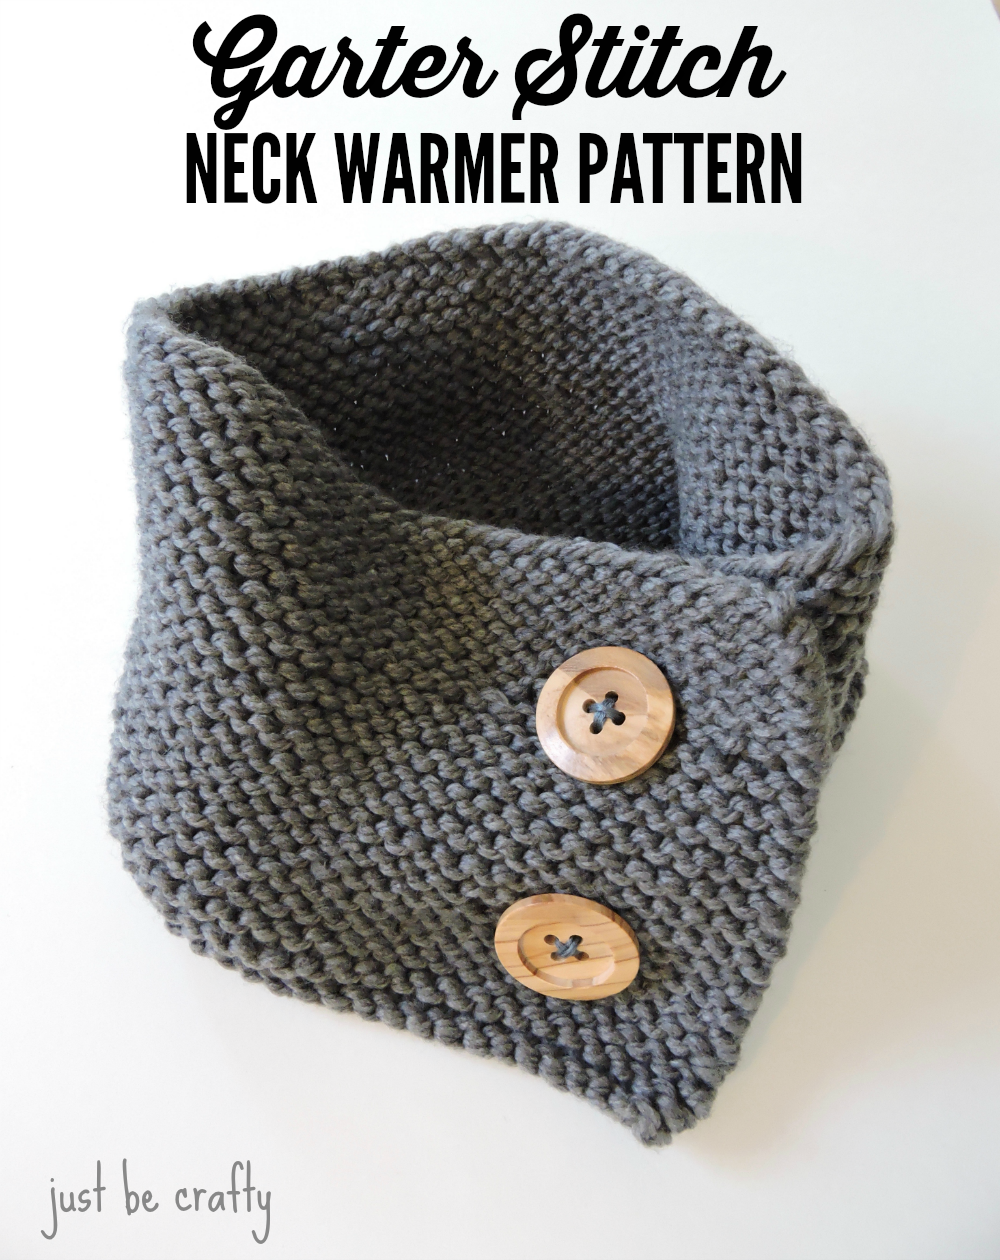 Garter Stitch Button-Up Neck warmer